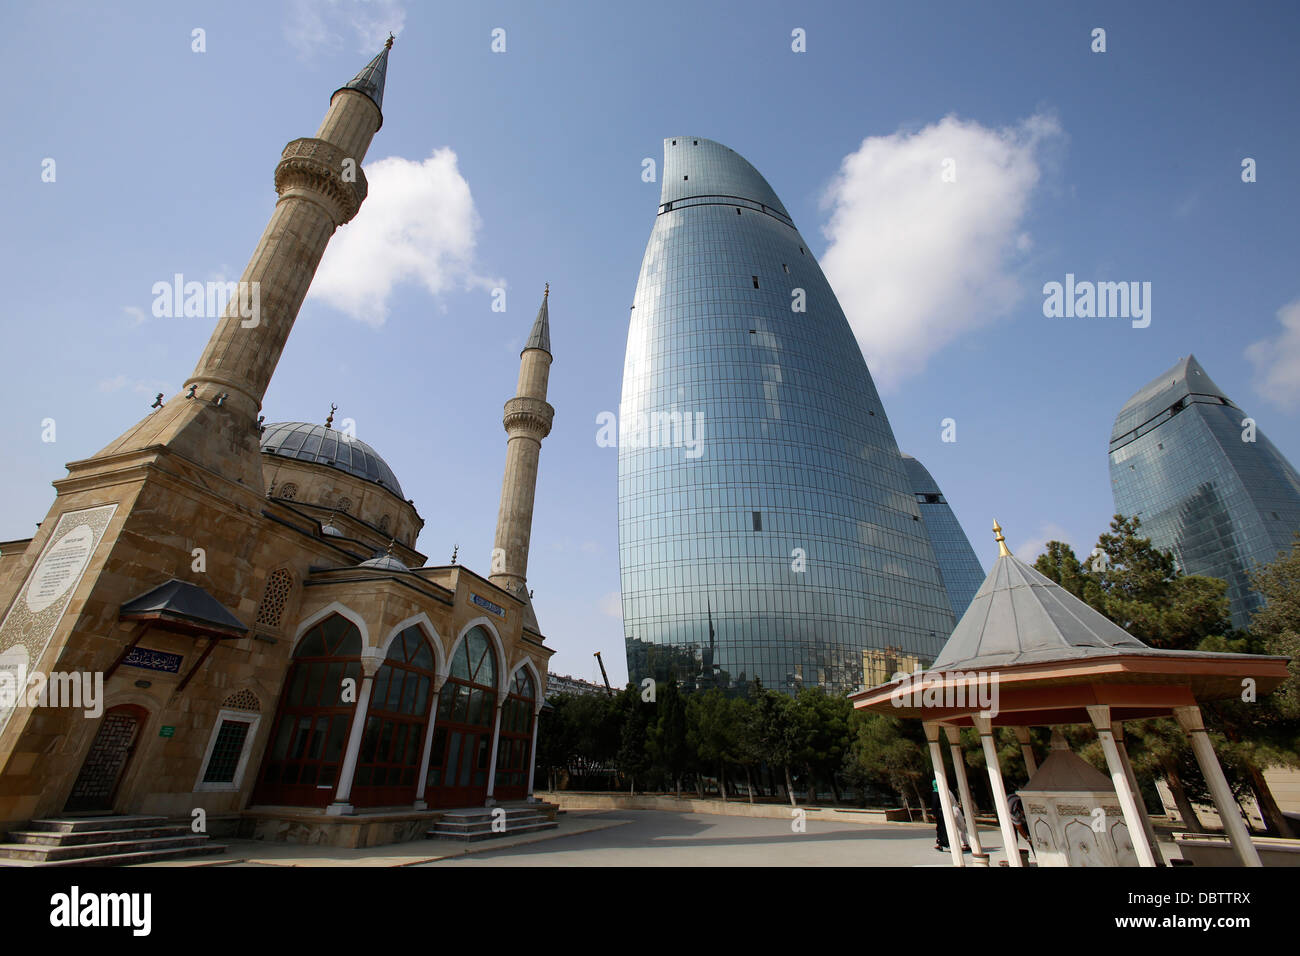 Shehidler mosque and the Flame Towers, Baku, Azerbaijan, Central Asia, Asia - Stock Image